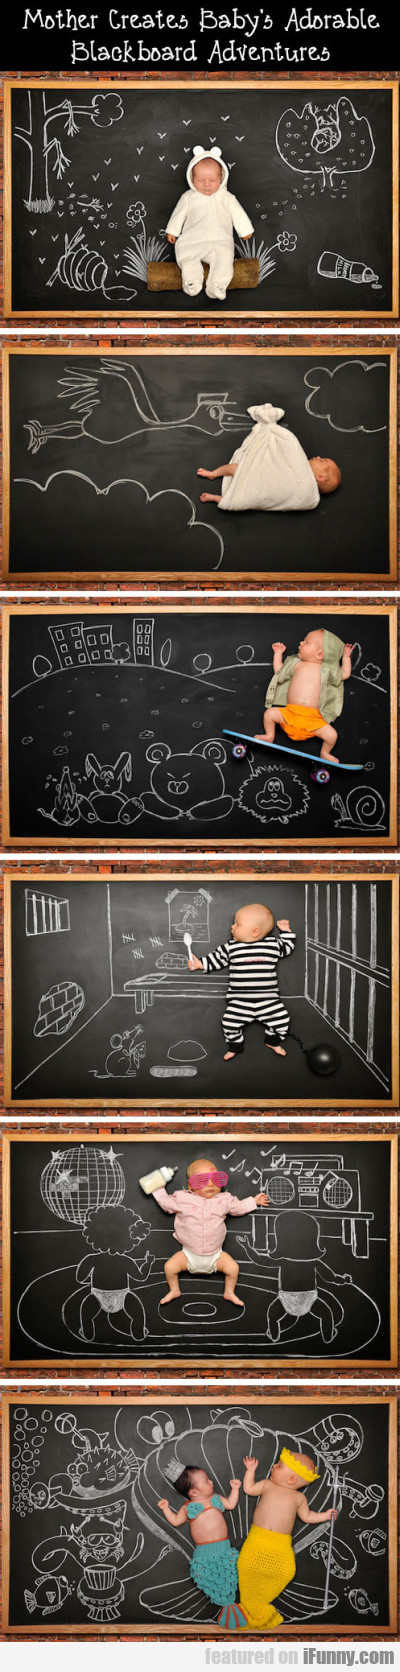 Mother creates baby's adorable blackboard..